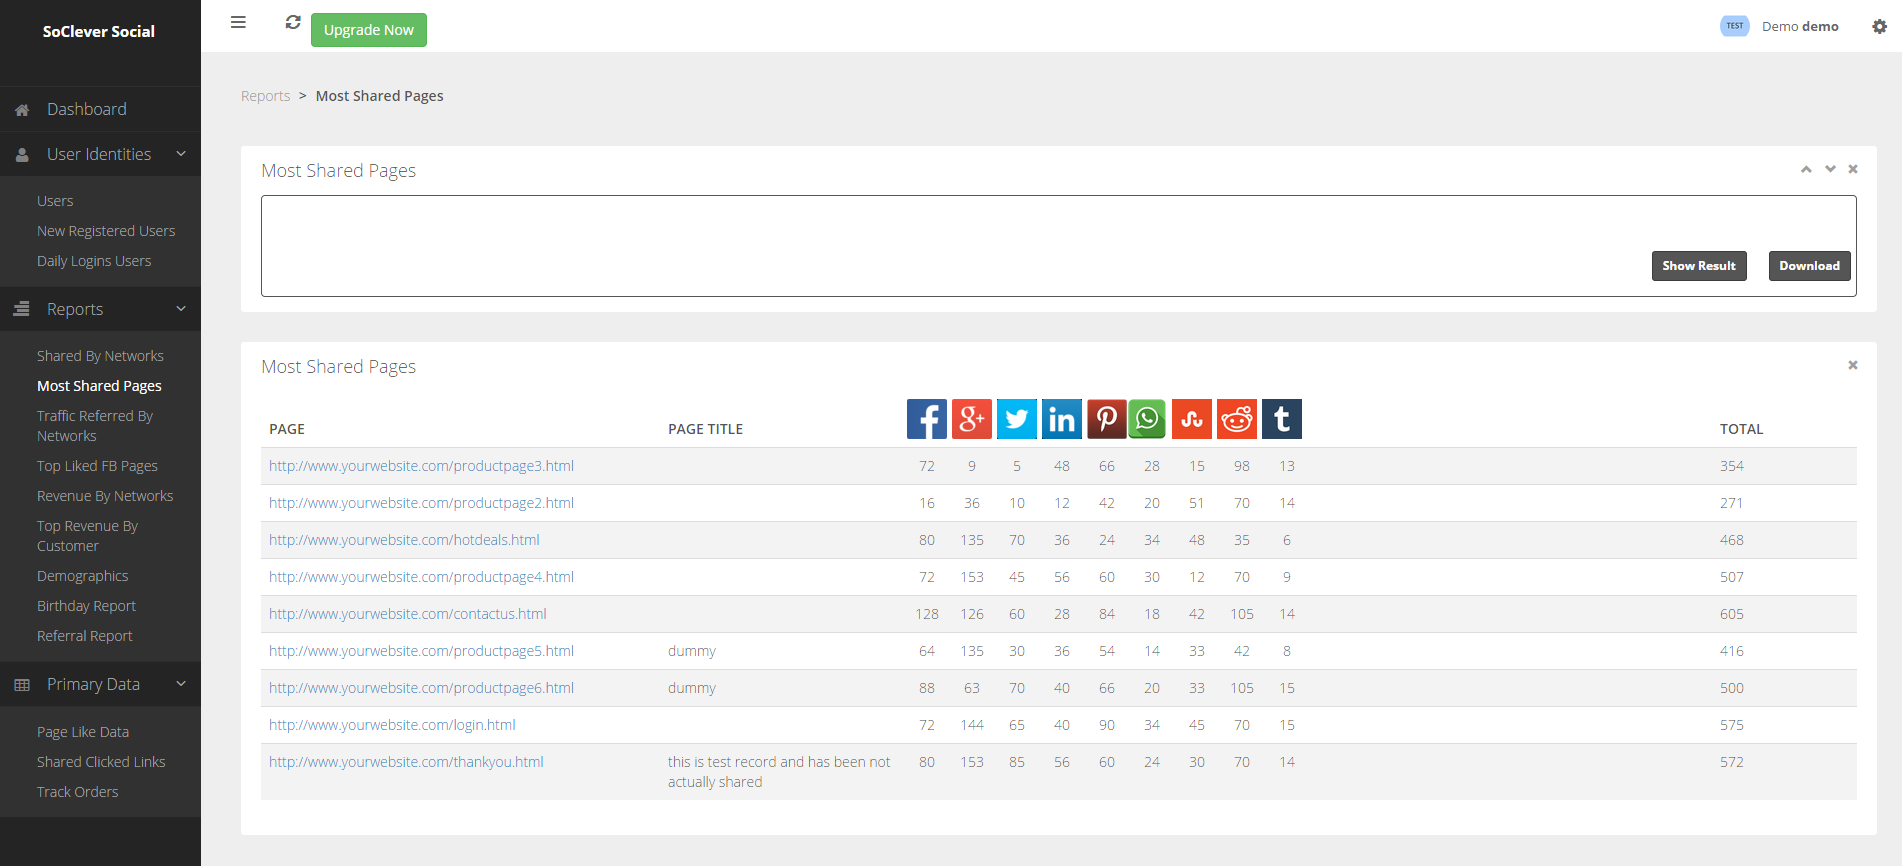 social-login-sharing-buttons-with-analytics-by-soclever screenshot 4